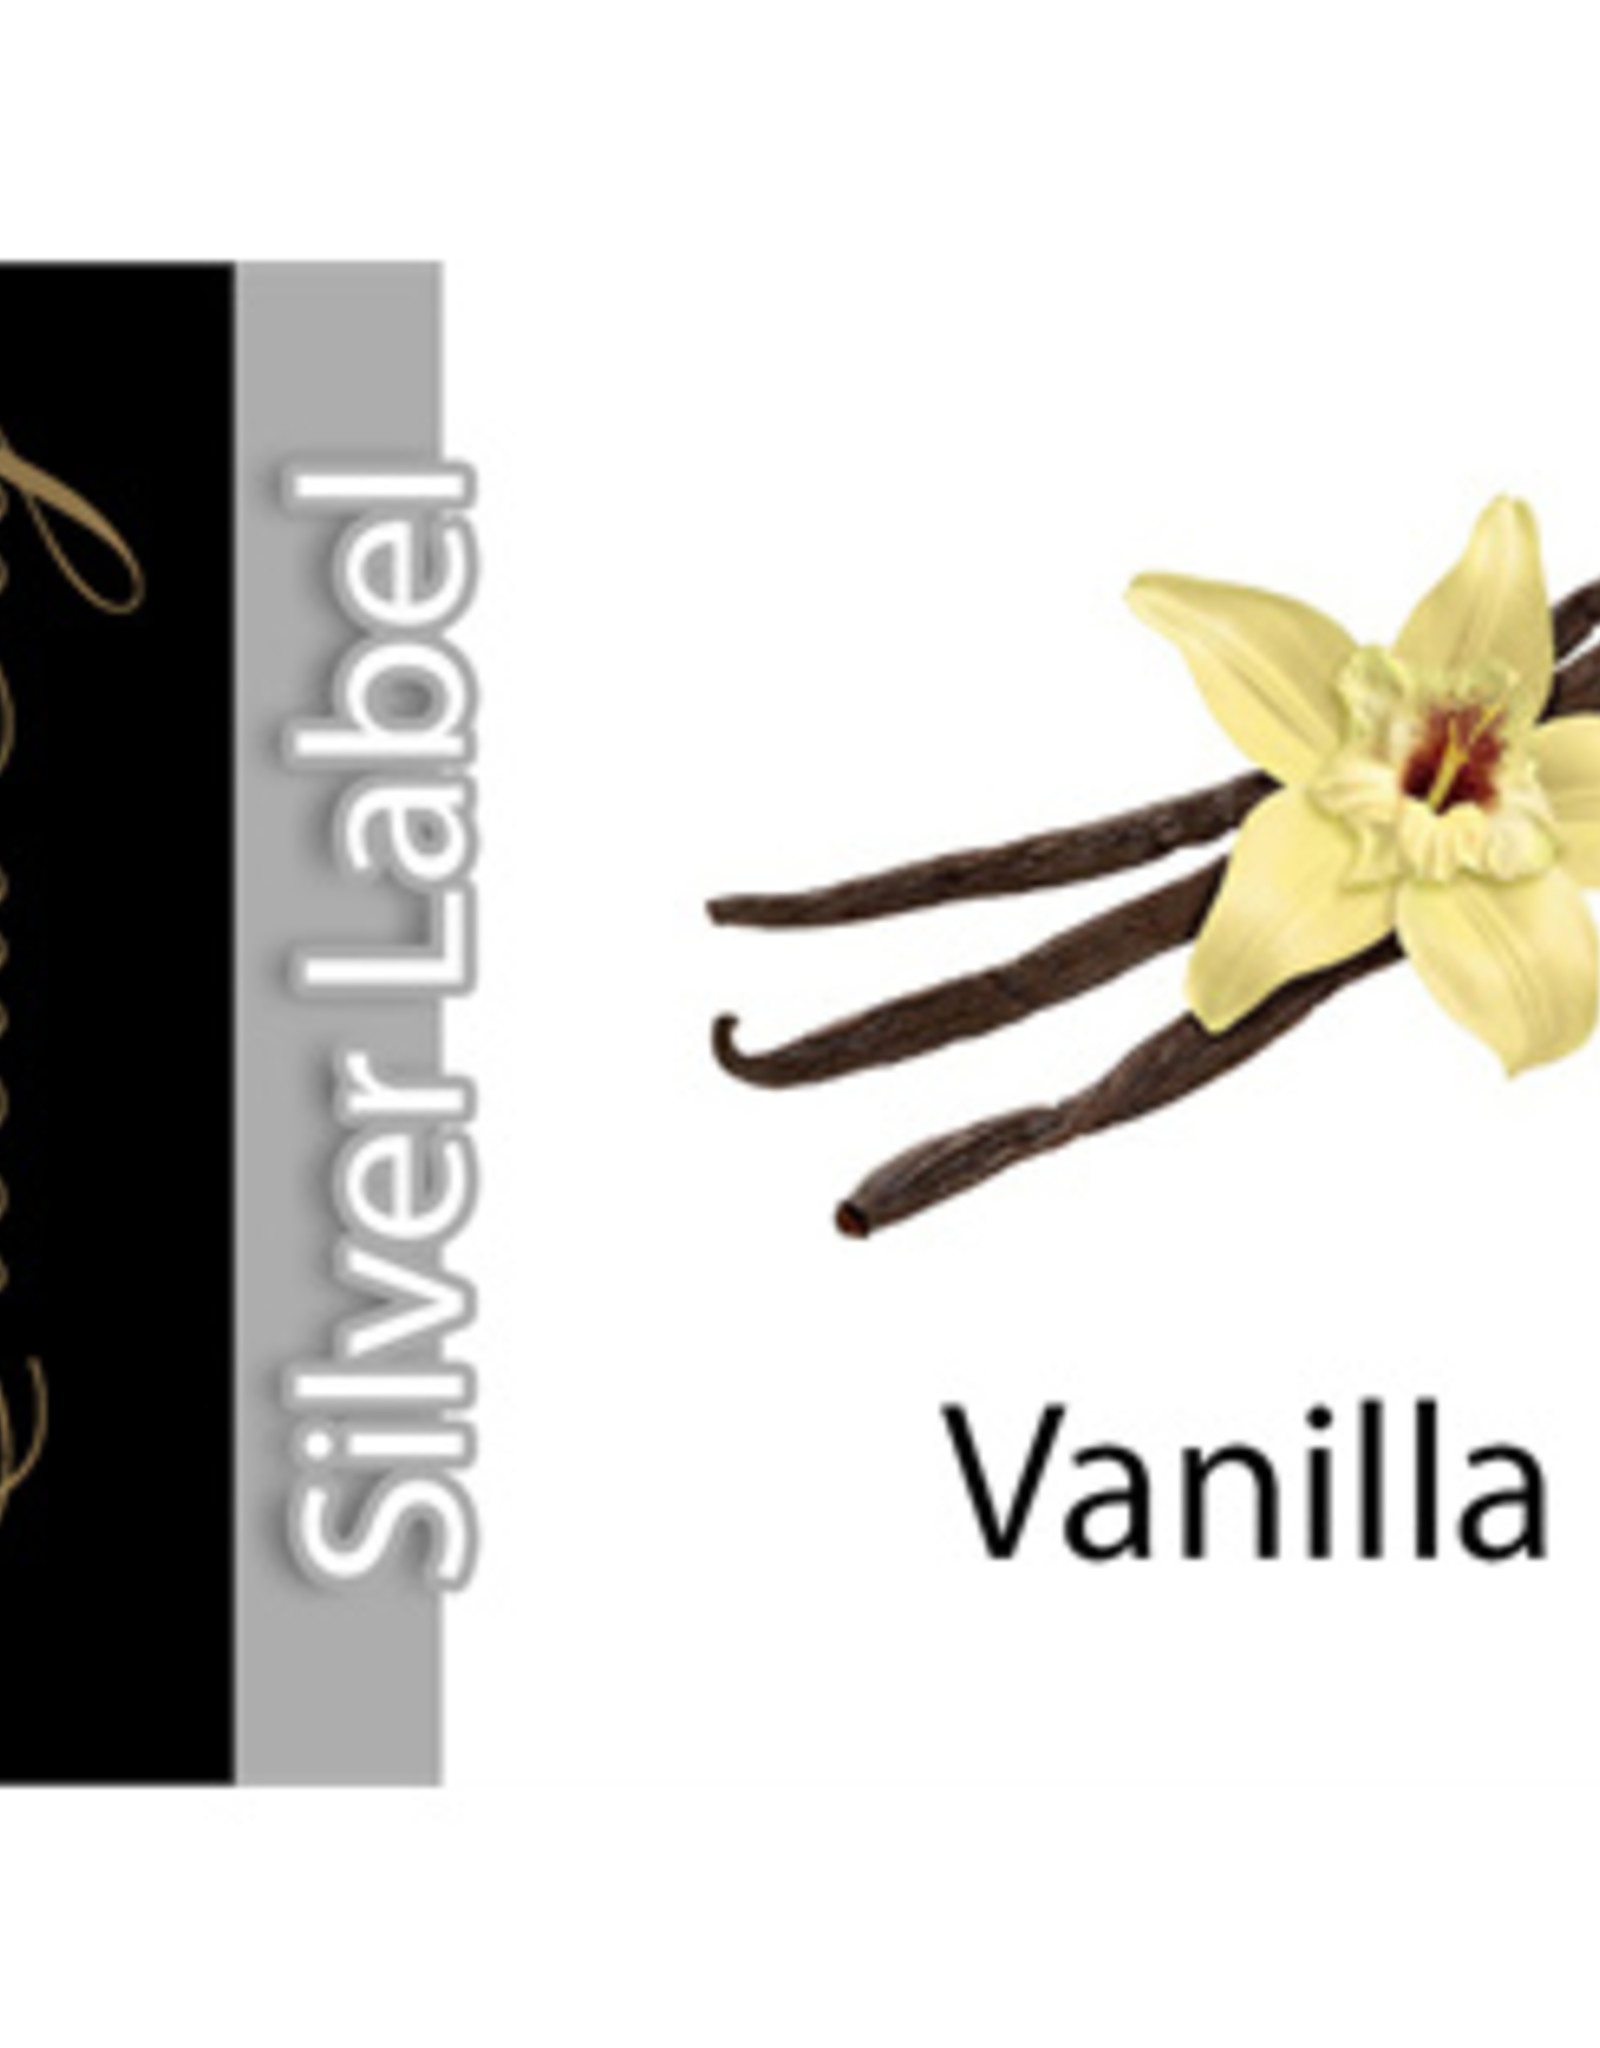 Exclucig Exclucig Silver Label E-liquid Vanilla 12 mg Nicotine